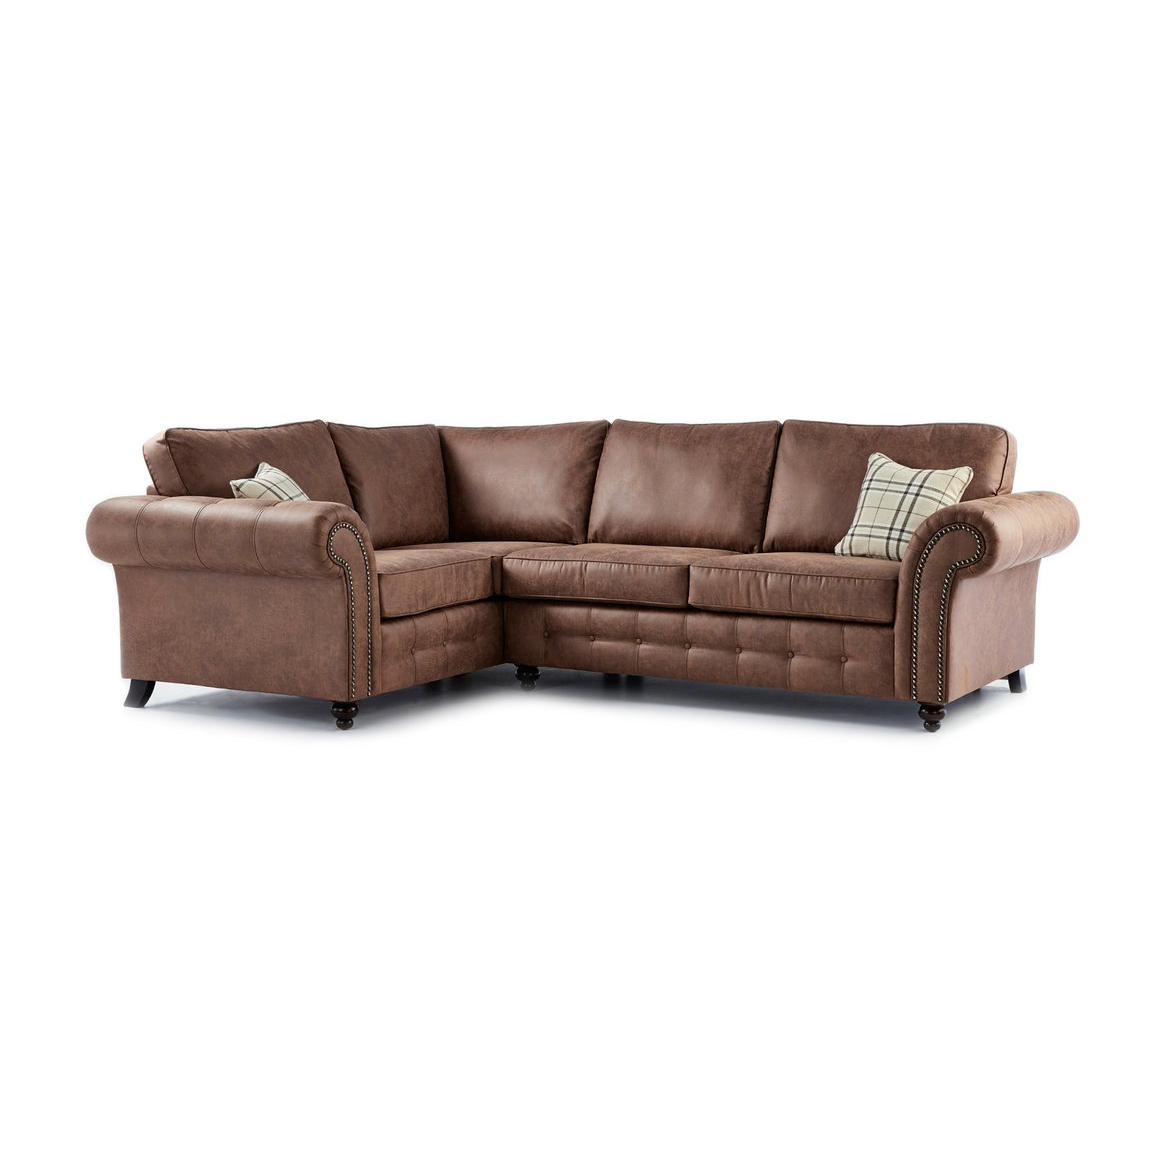 Oakland Faux Leather Left Hand Corner Sofa in Brown